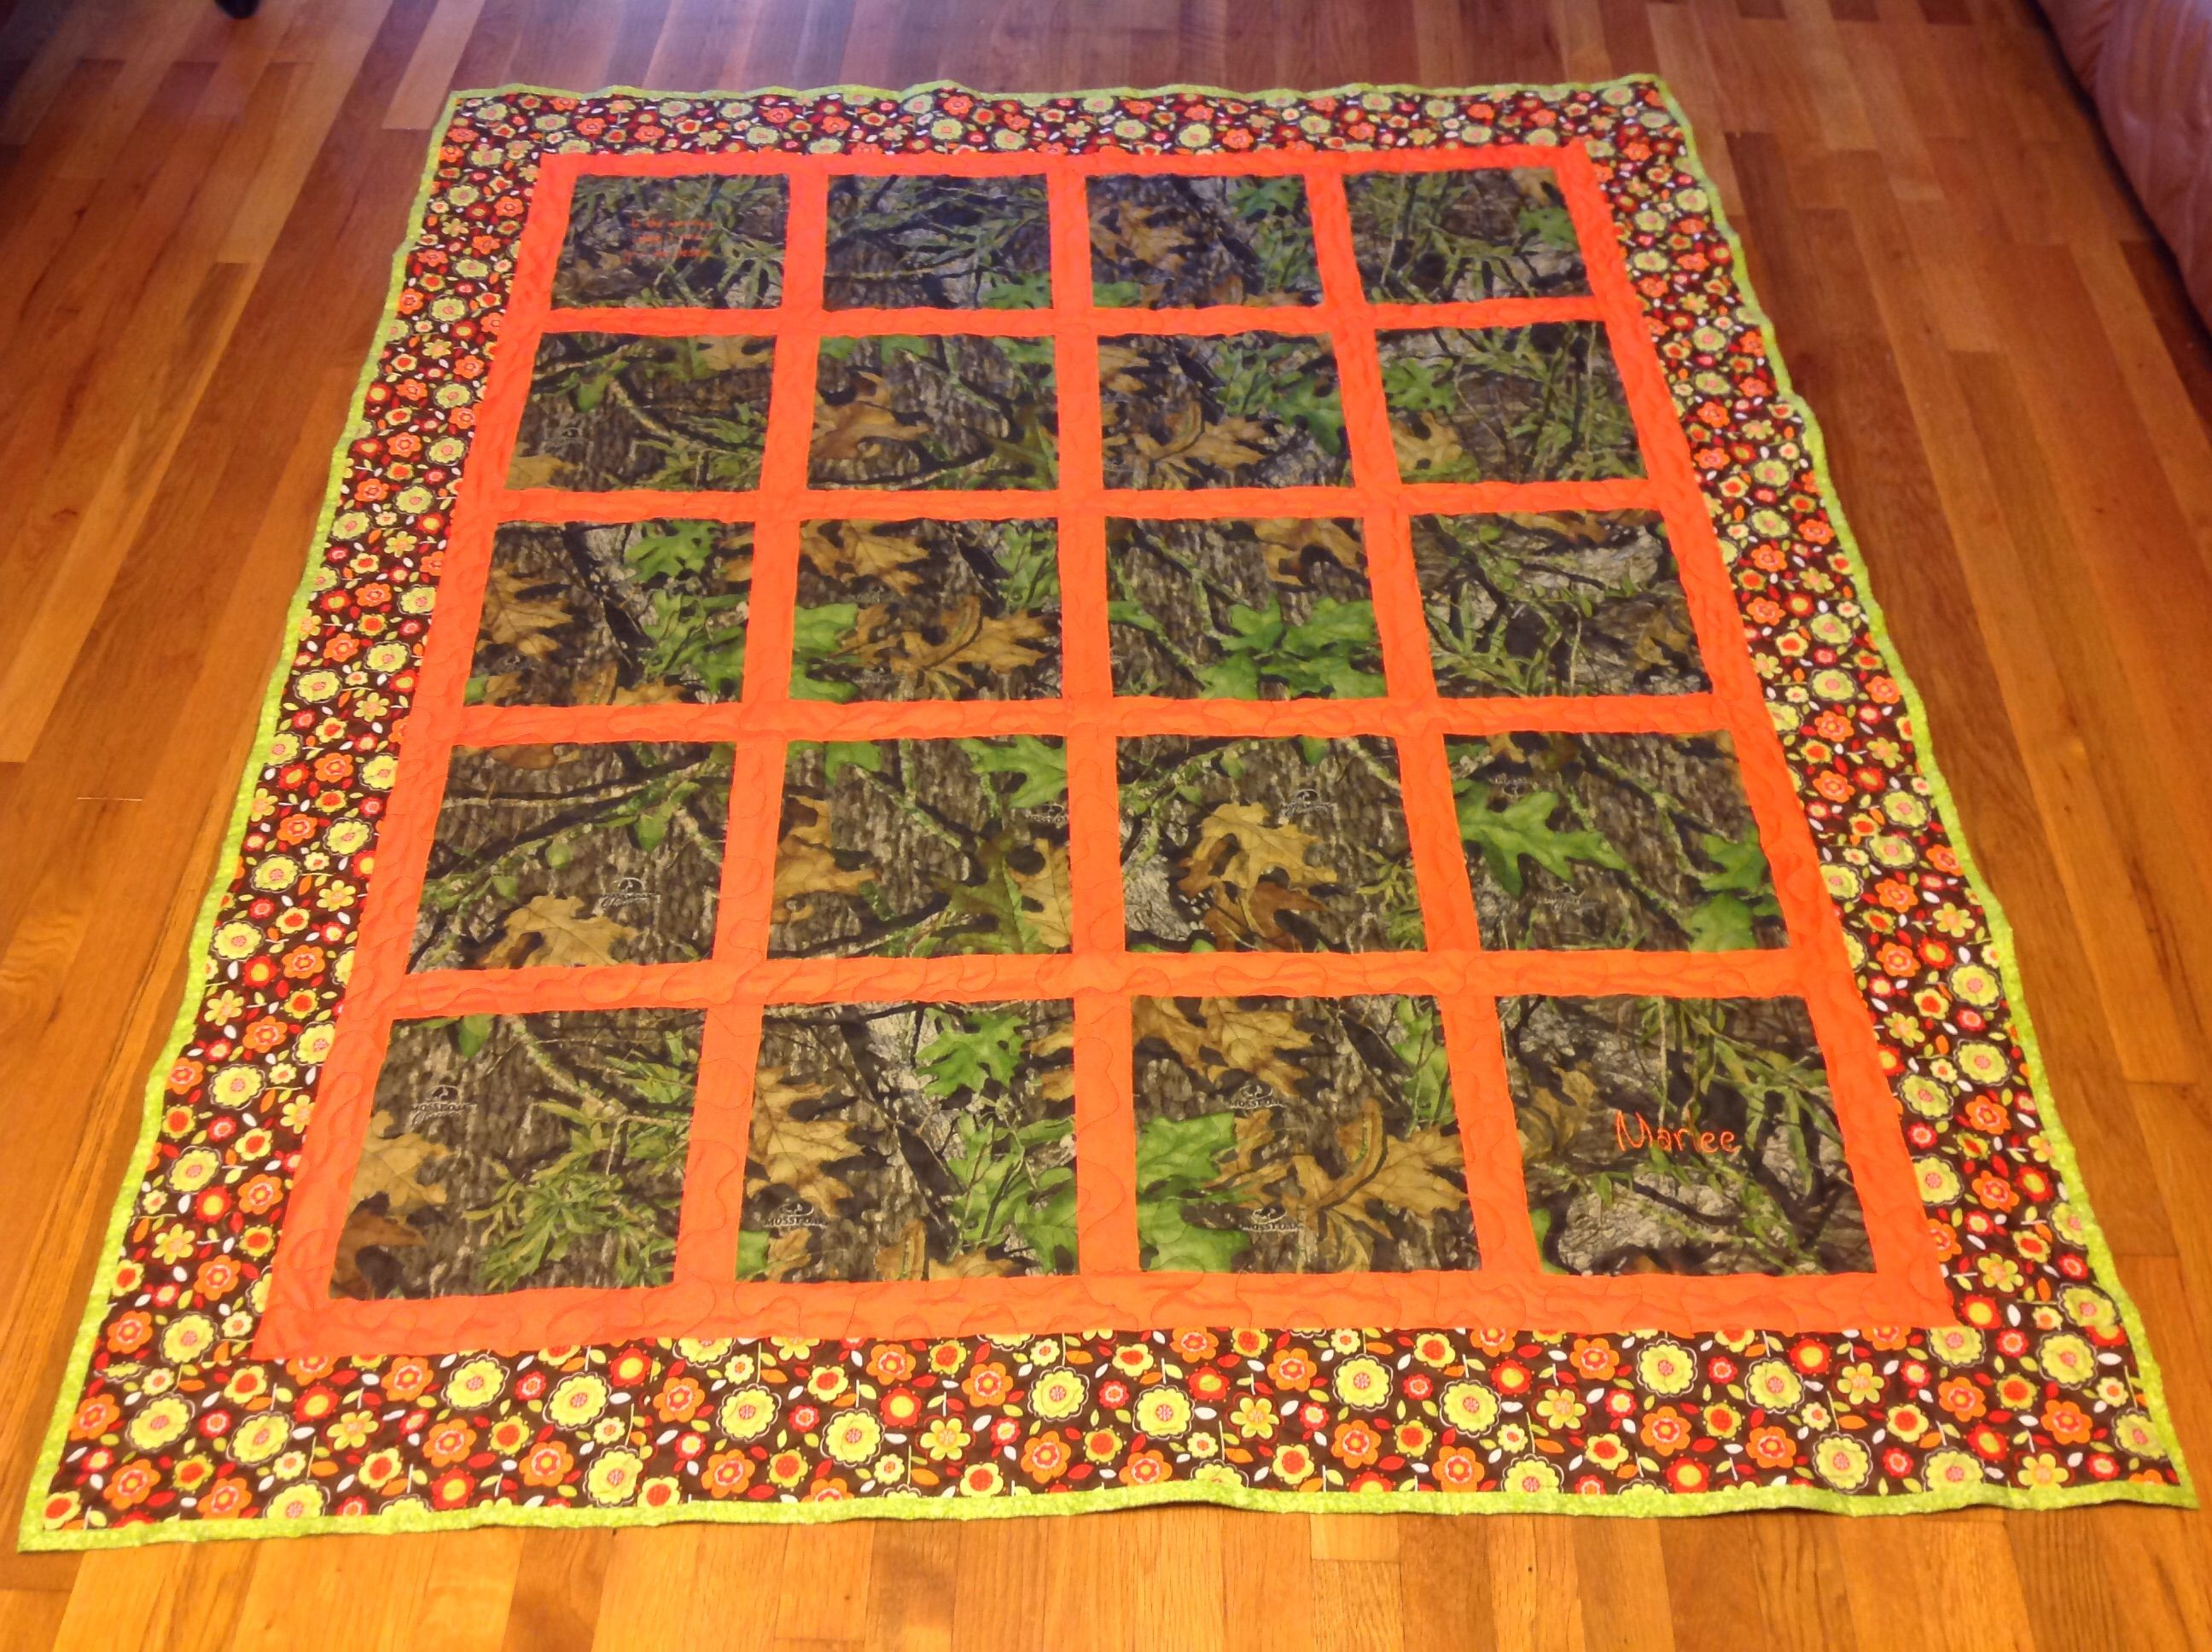 Hand crafted custom camo outdoor window pane style scenic for Window pane quilt design